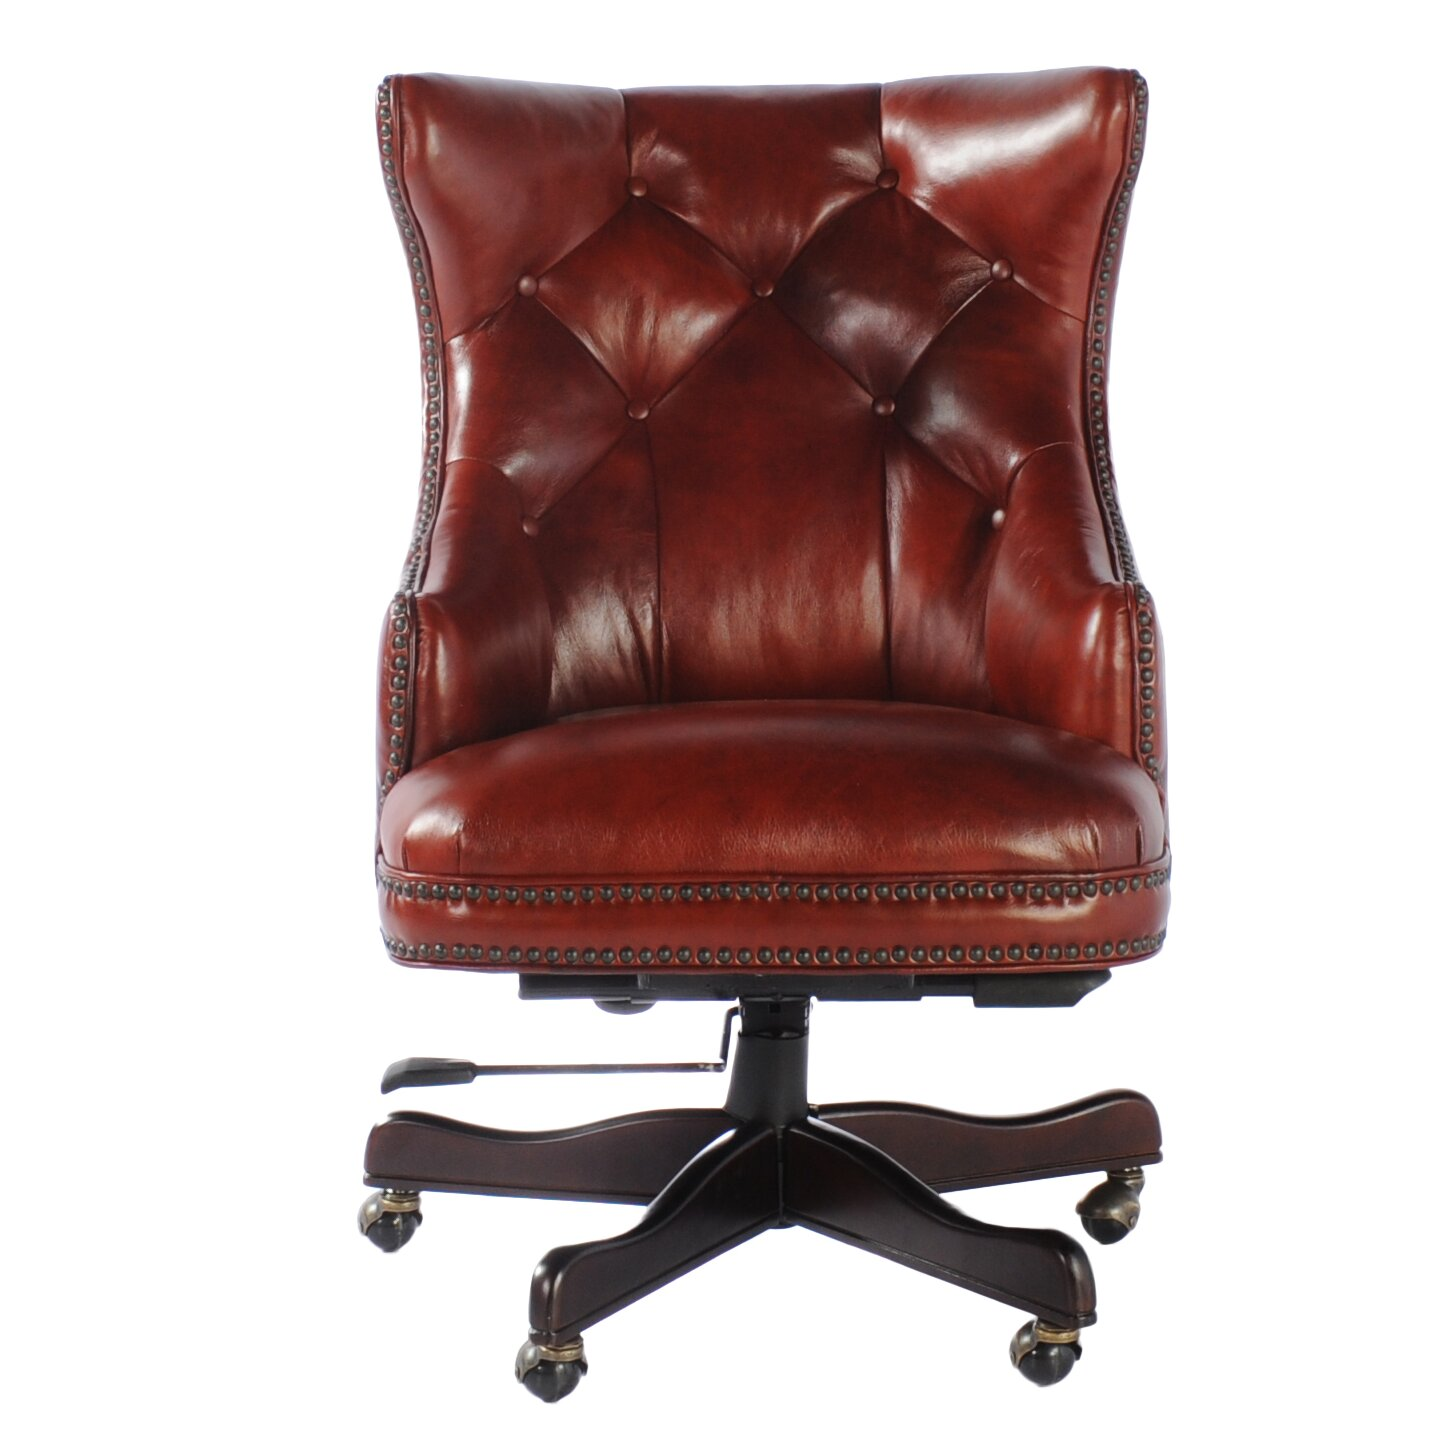 Tan leather office chair - Obama Leather Executive Chair